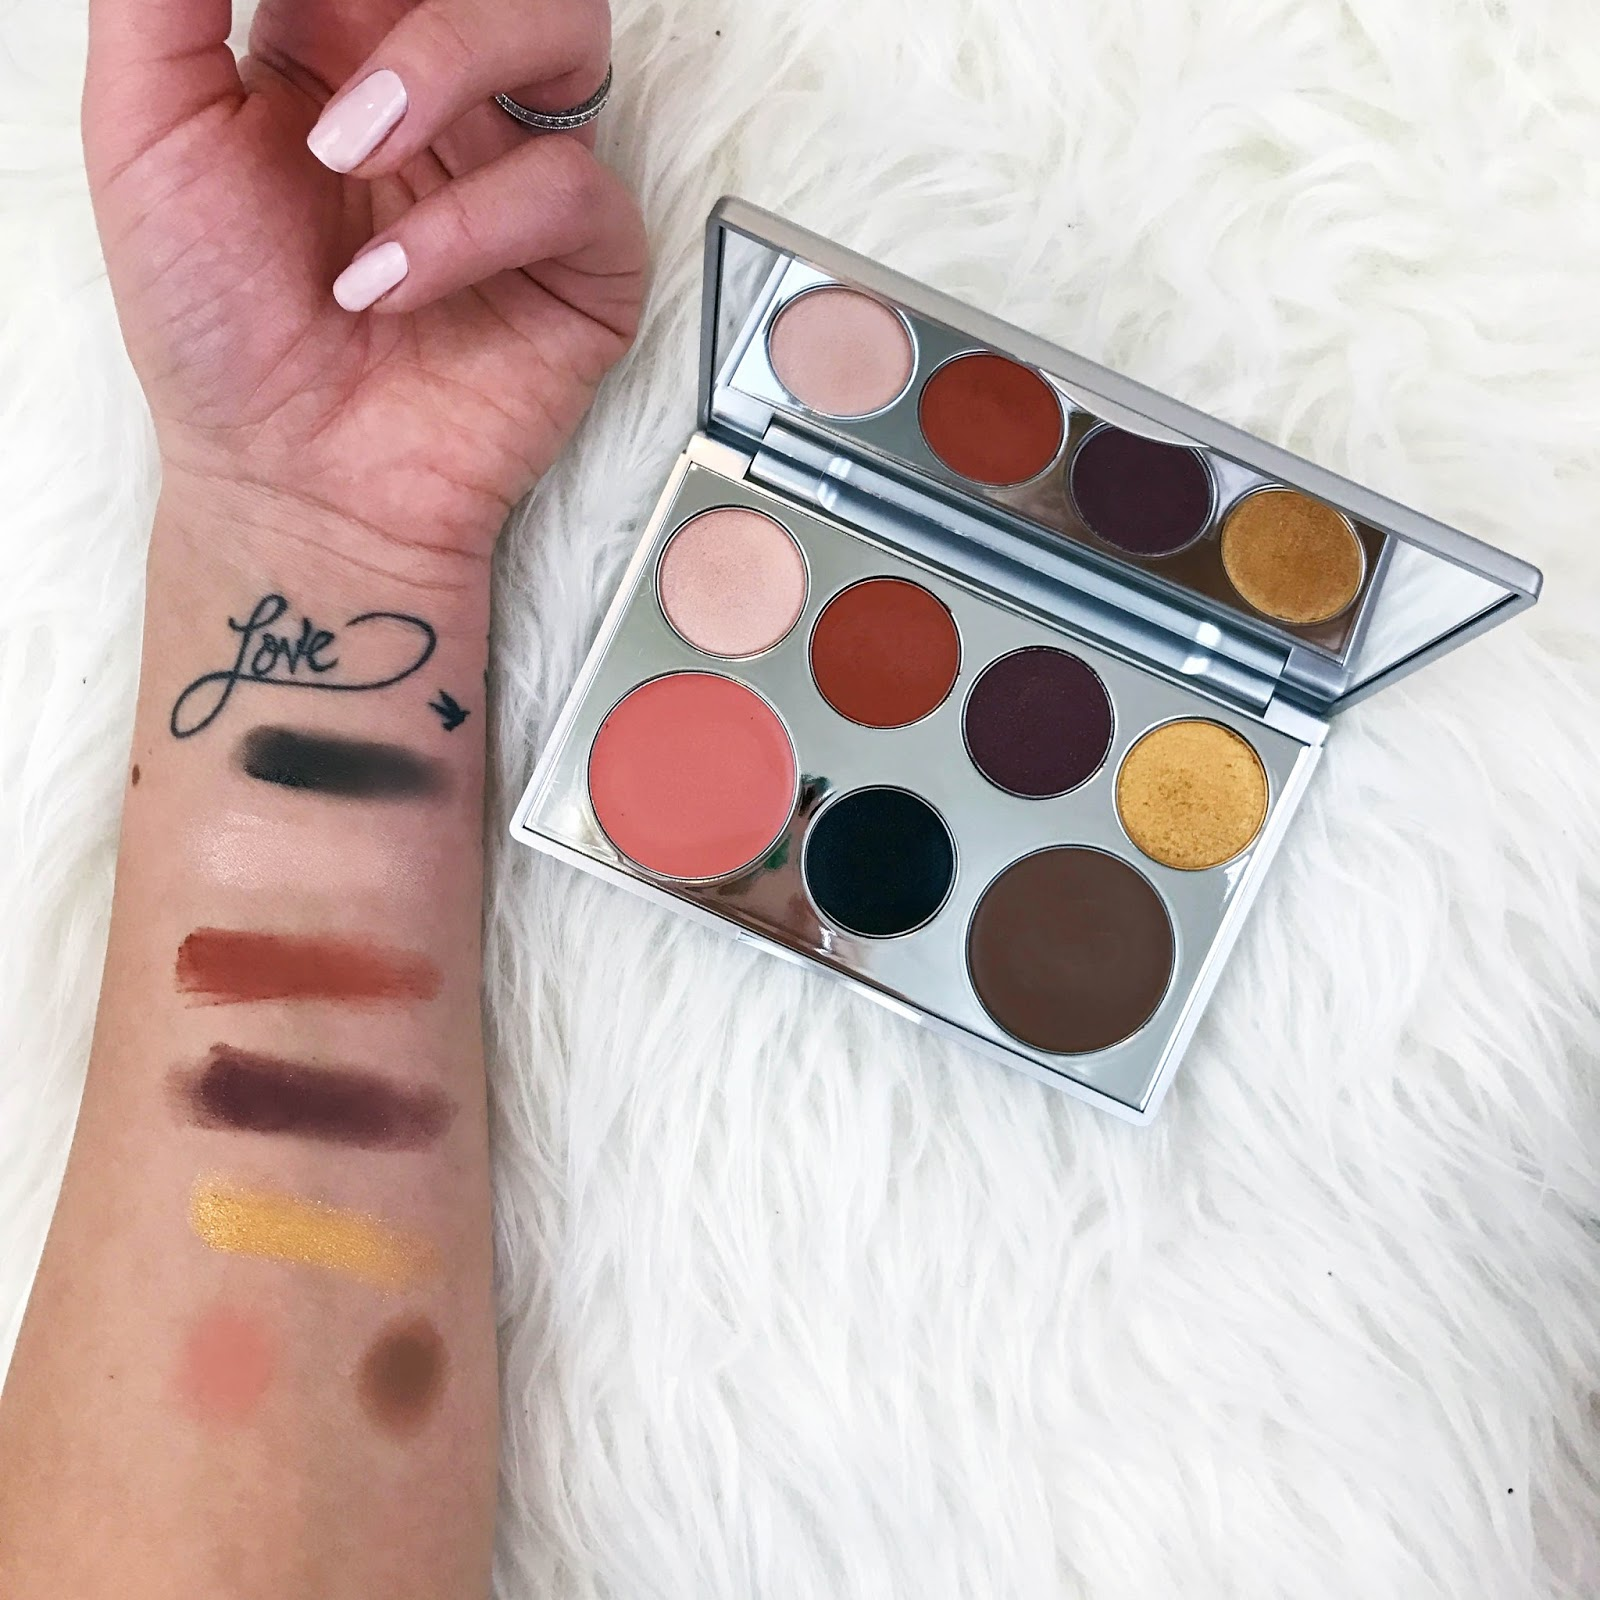 Pür cosmetics transformation palette